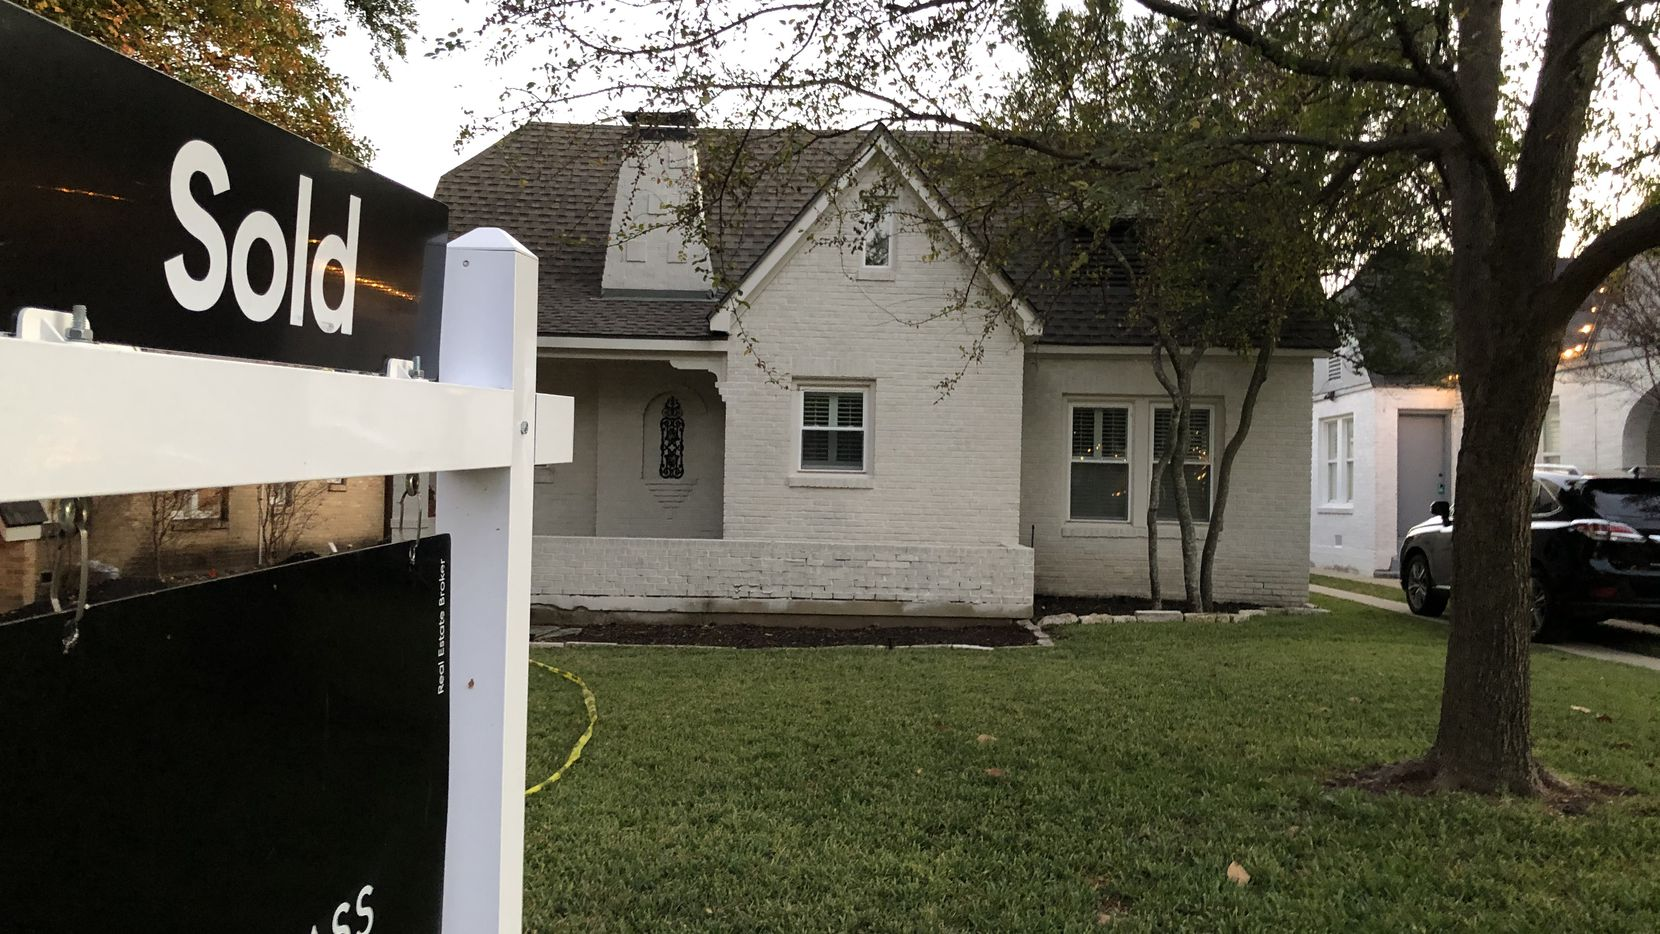 Dallas County home sales rose more than 18% in March from a year earlier.